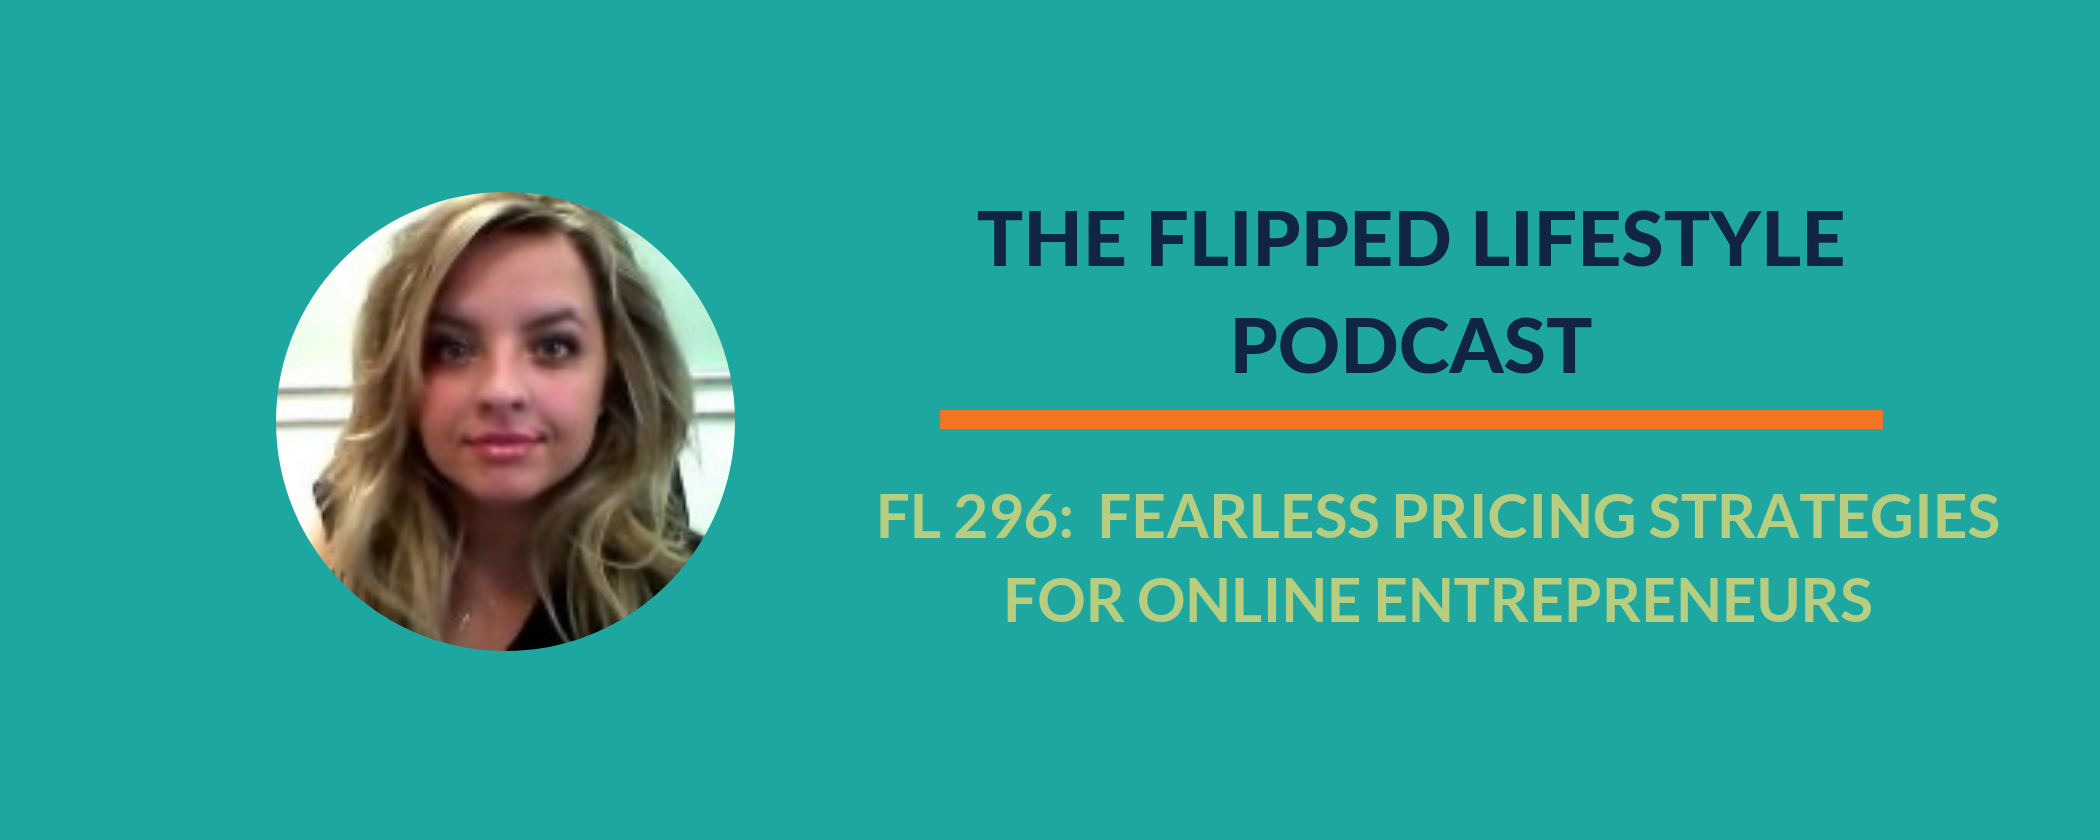 EARLY PODCAST:  FL 296 - Fearless Pricing Strategies for Online Entrepreneurs